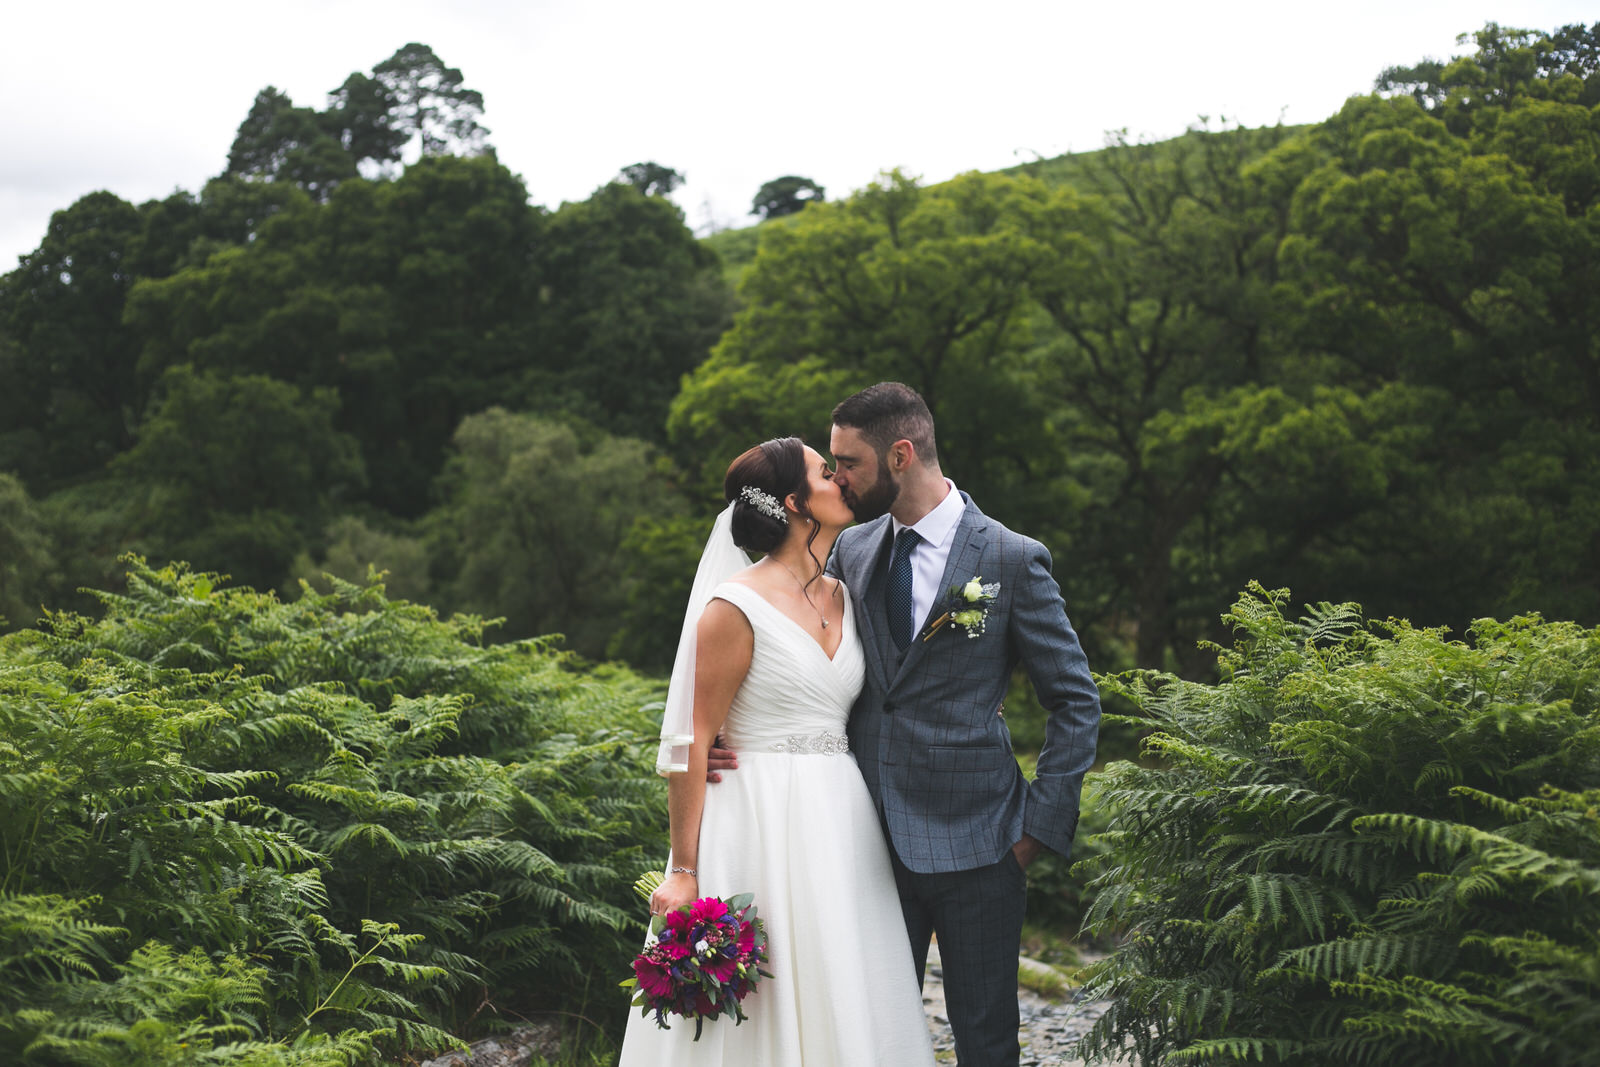 Kippure estate wedding venue in wicklow mountains